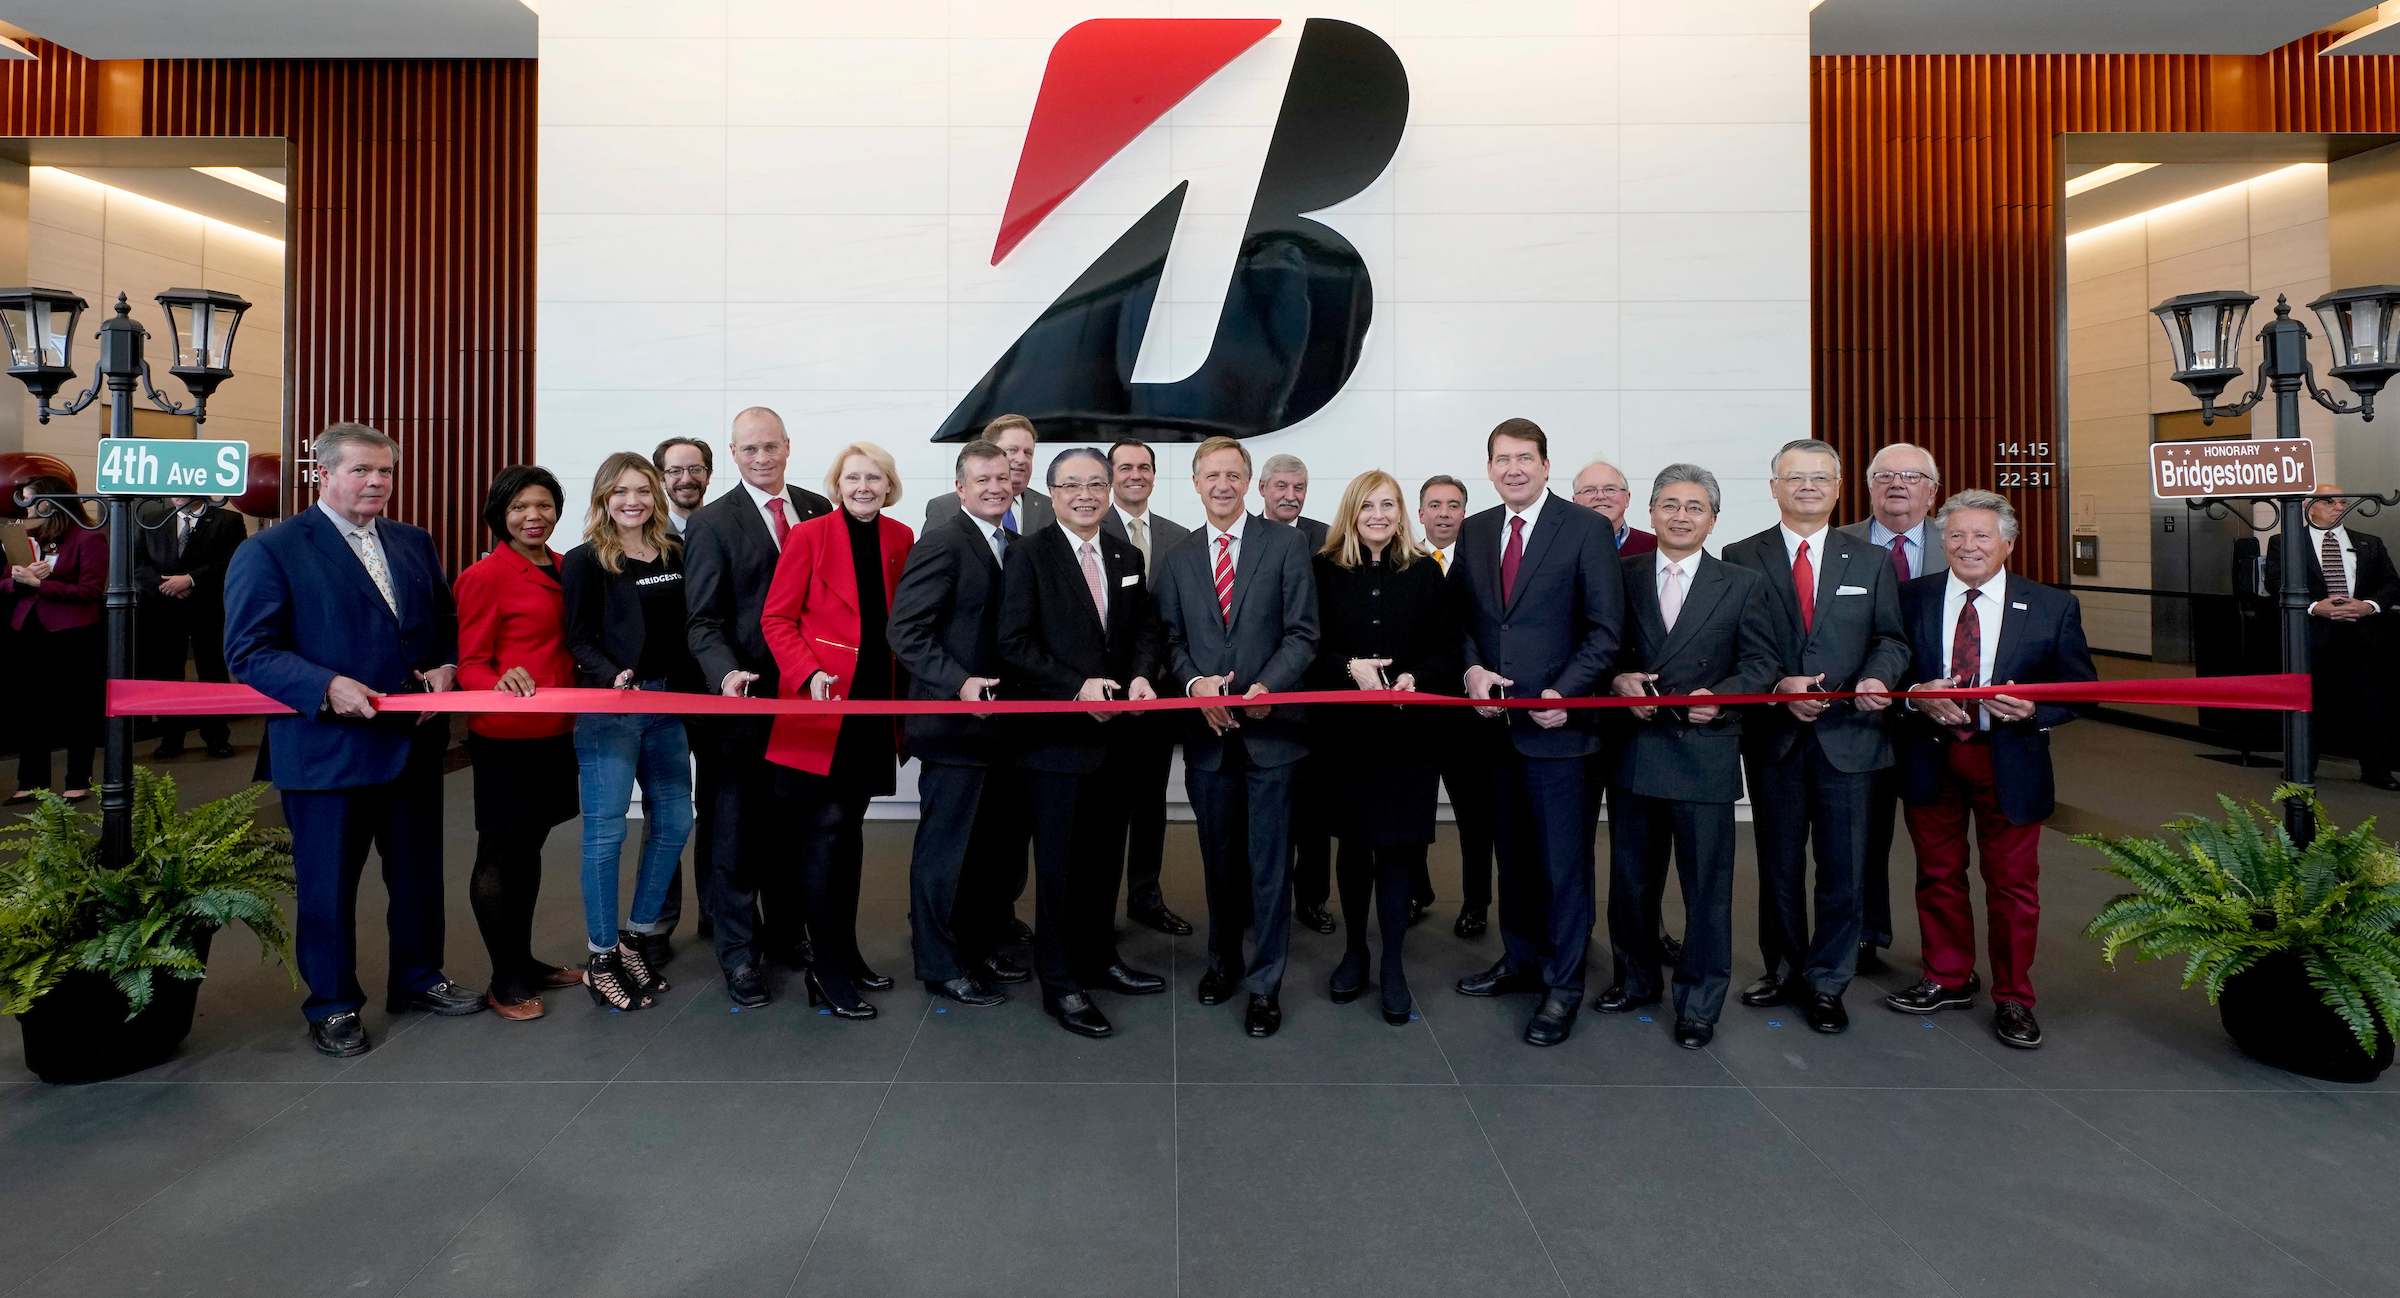 The Nashville Chamber of Commerce Ribbon Cutting